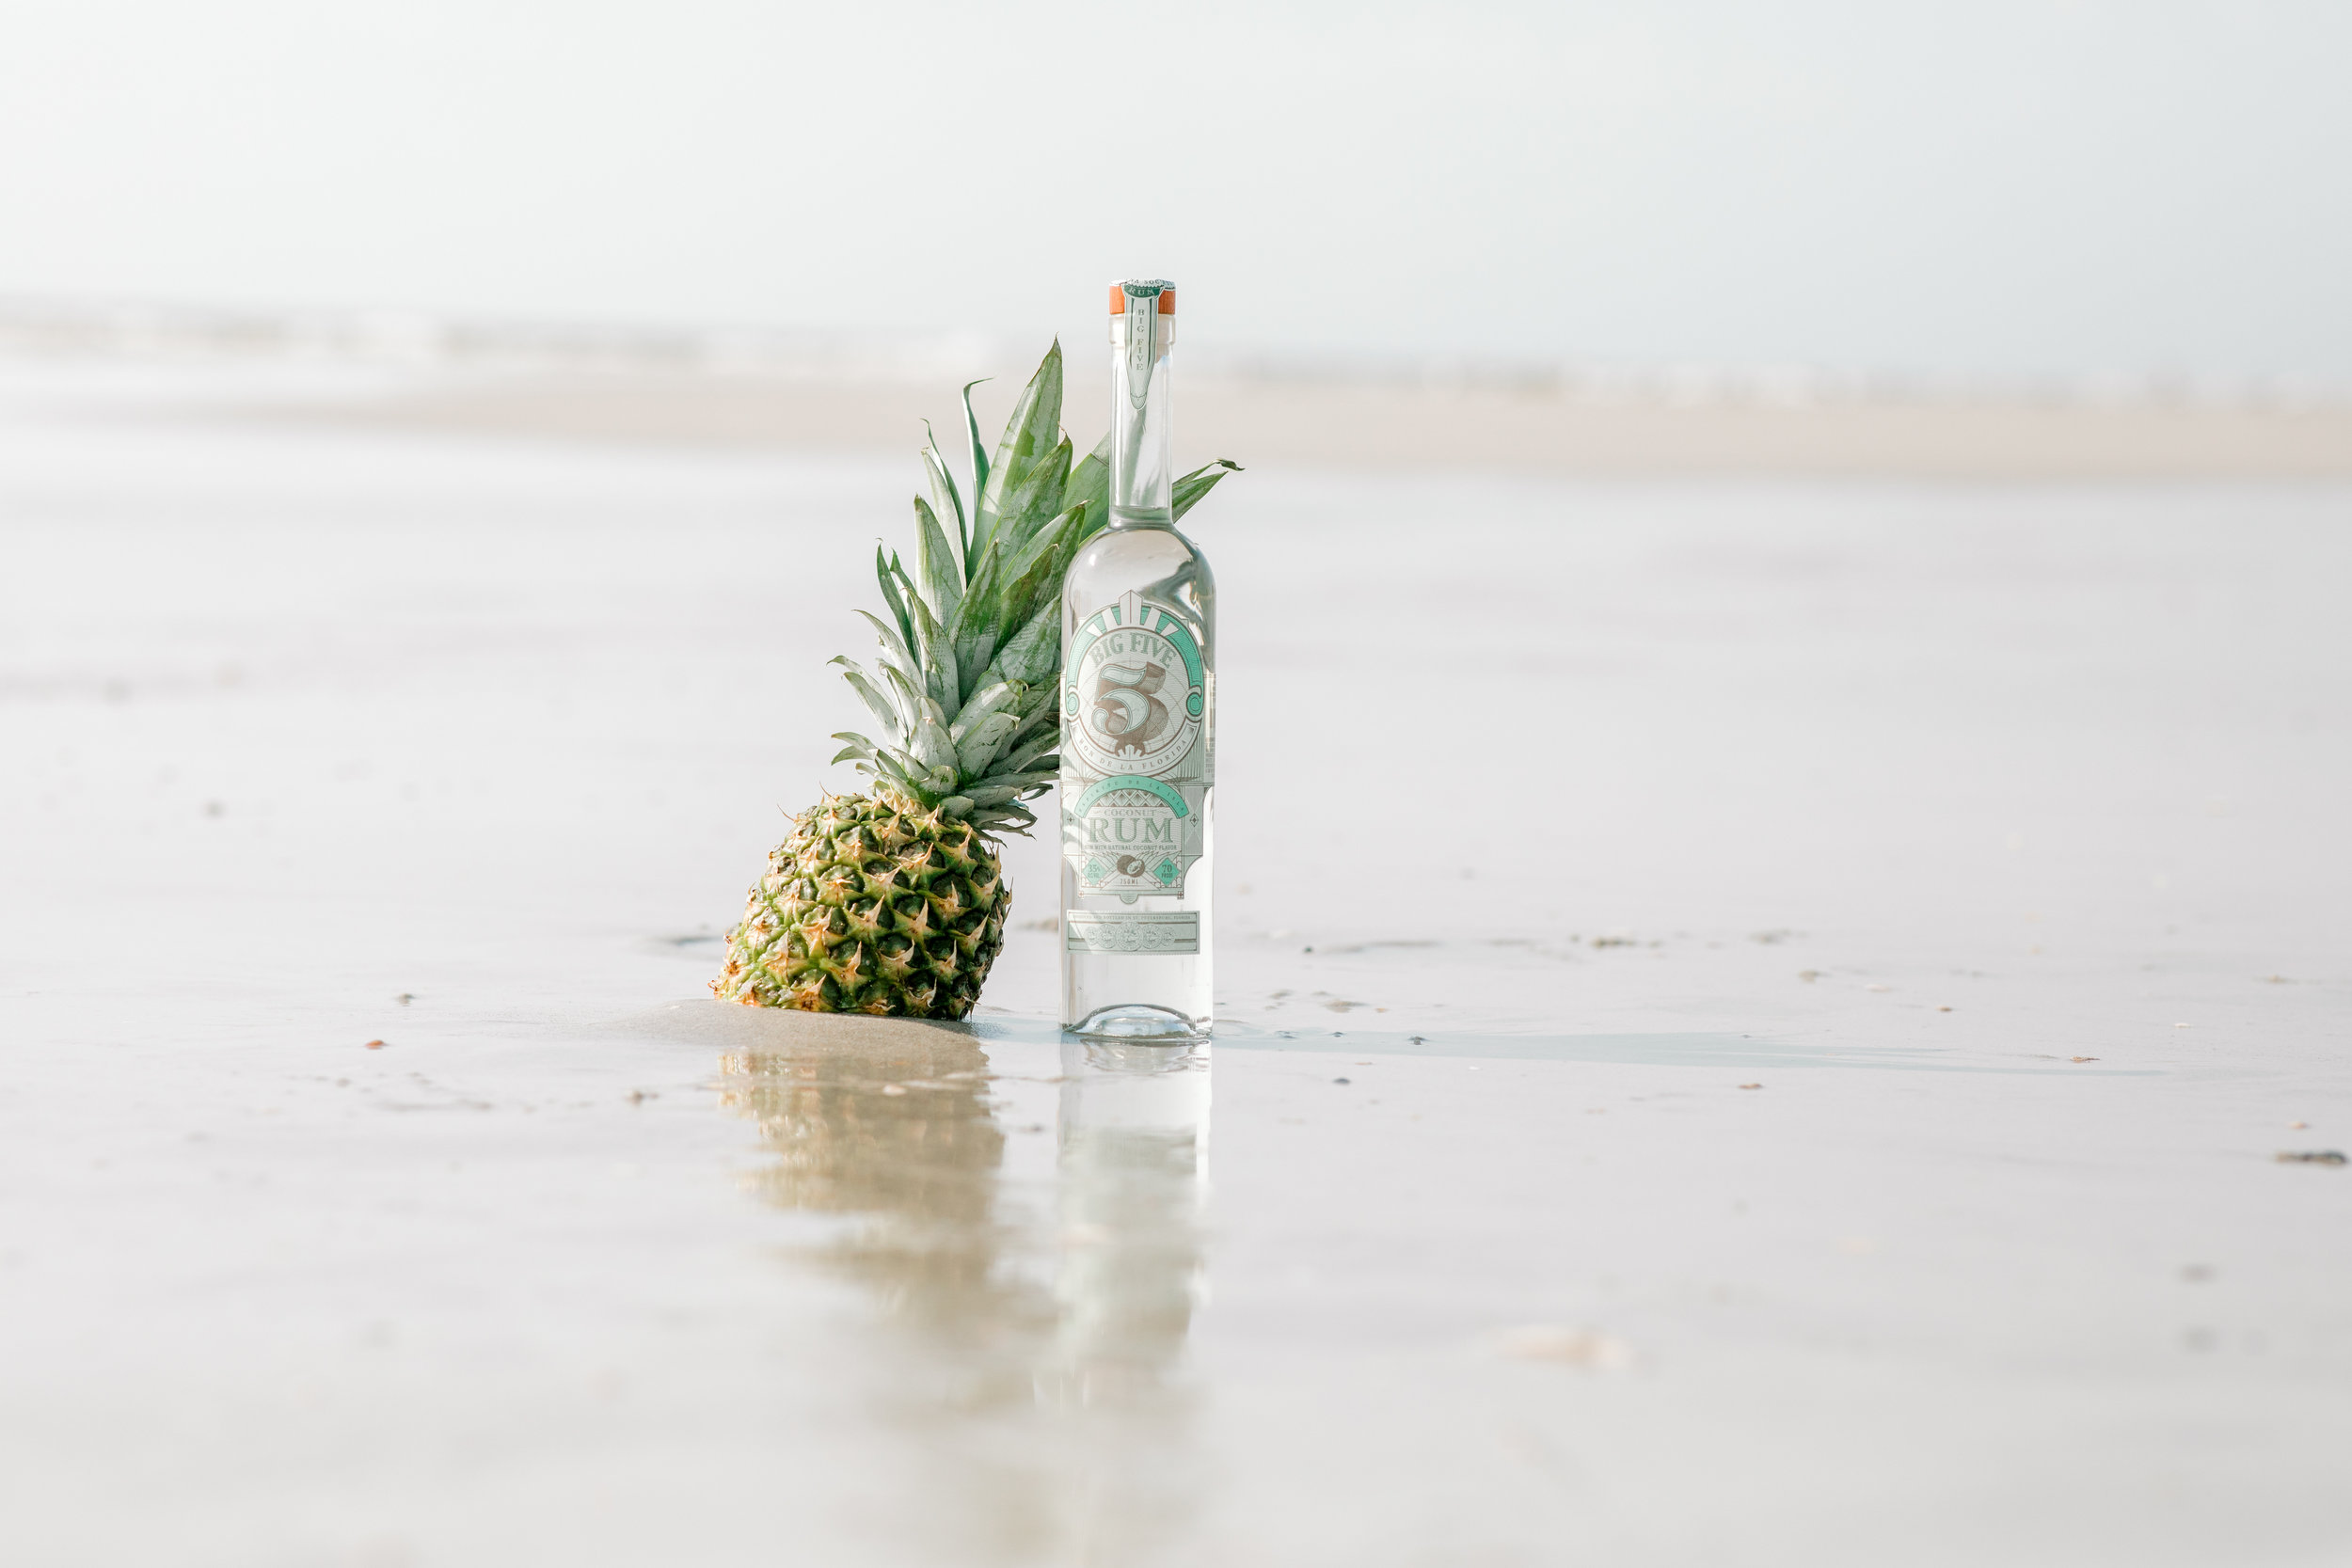 Big 5 Coconut - Big 5 Coconut Rum is smooth and fresh on the palate with a touch of sweetness. Made with all-natural coconut flavor, pour over ice. This rum brings you to the beaches of Miami or the rooftop bars of Havana, Cuba. ¡dale!